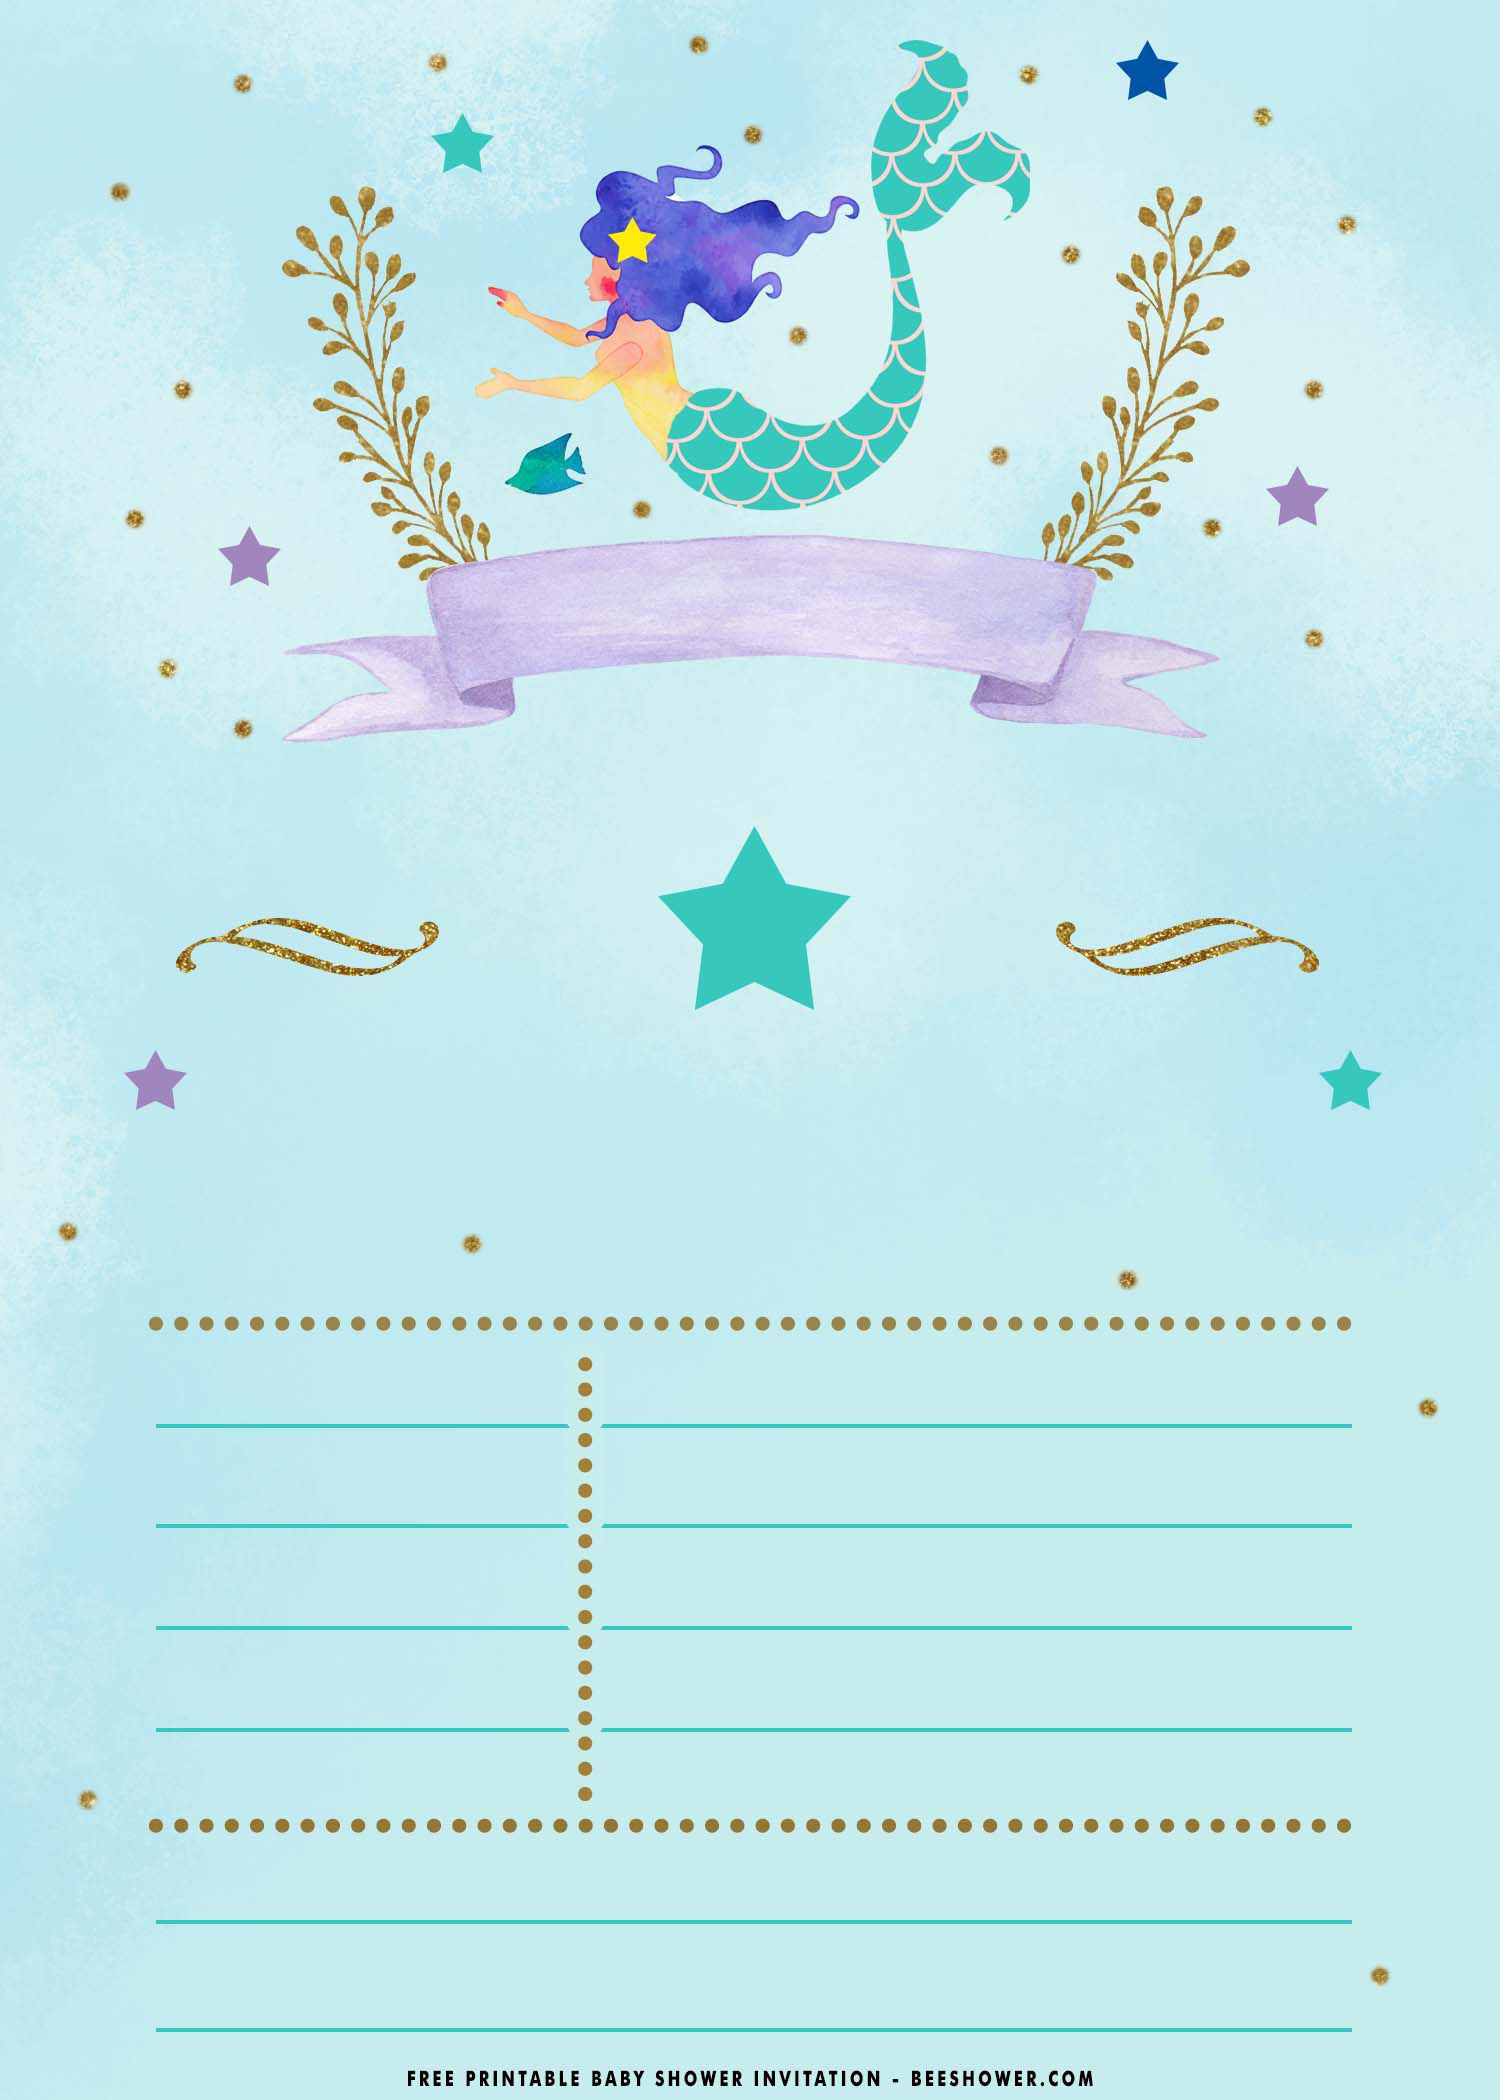 010 Breathtaking Free Mermaid Invitation Template Design  Download Printable Little Birthday Baby ShowerFull